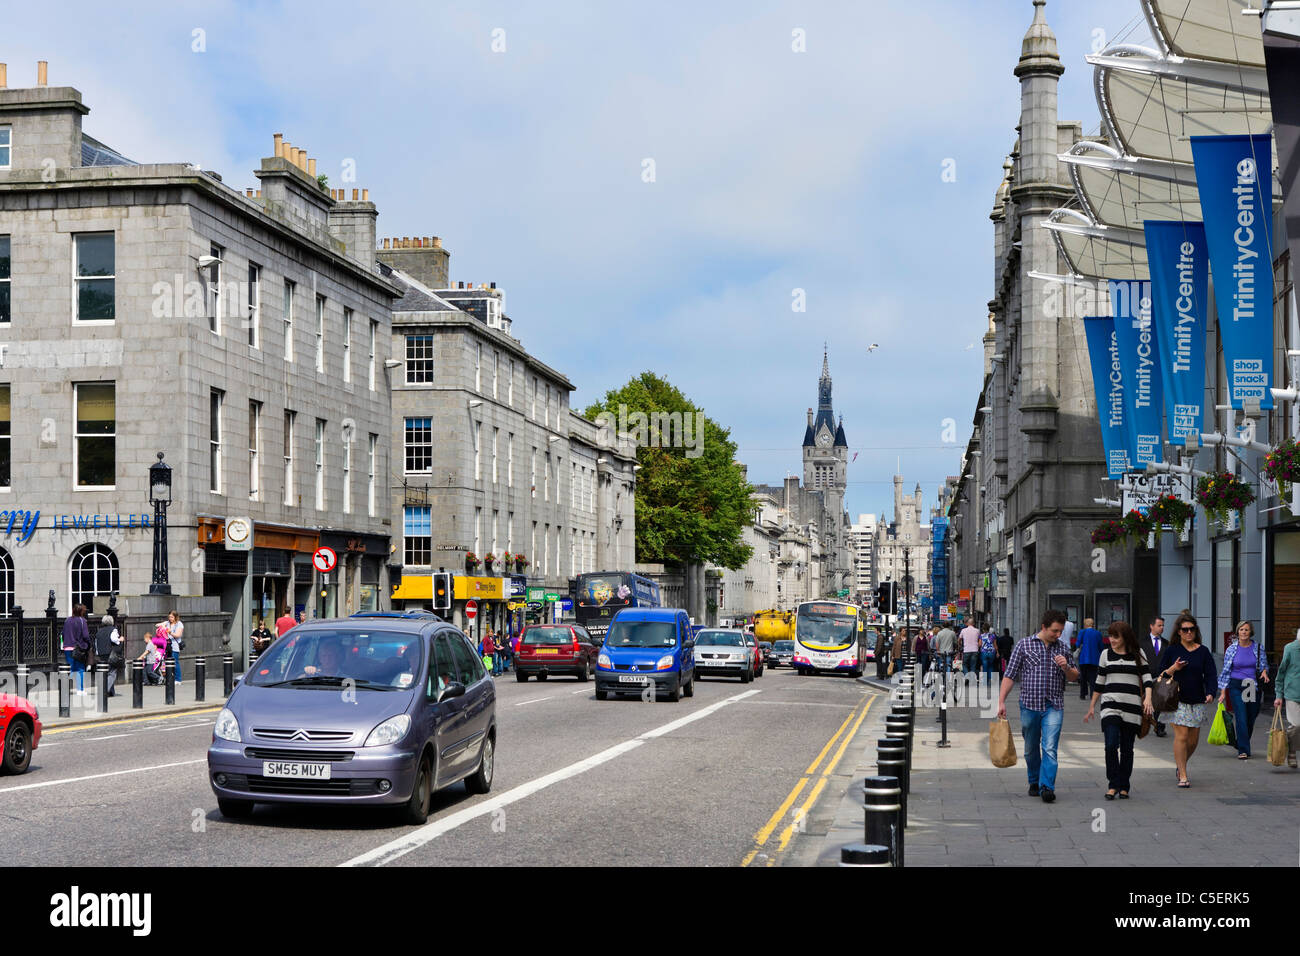 Shops on Union Street in the city centre, Aberdeen, Scotland, UK - Stock Image